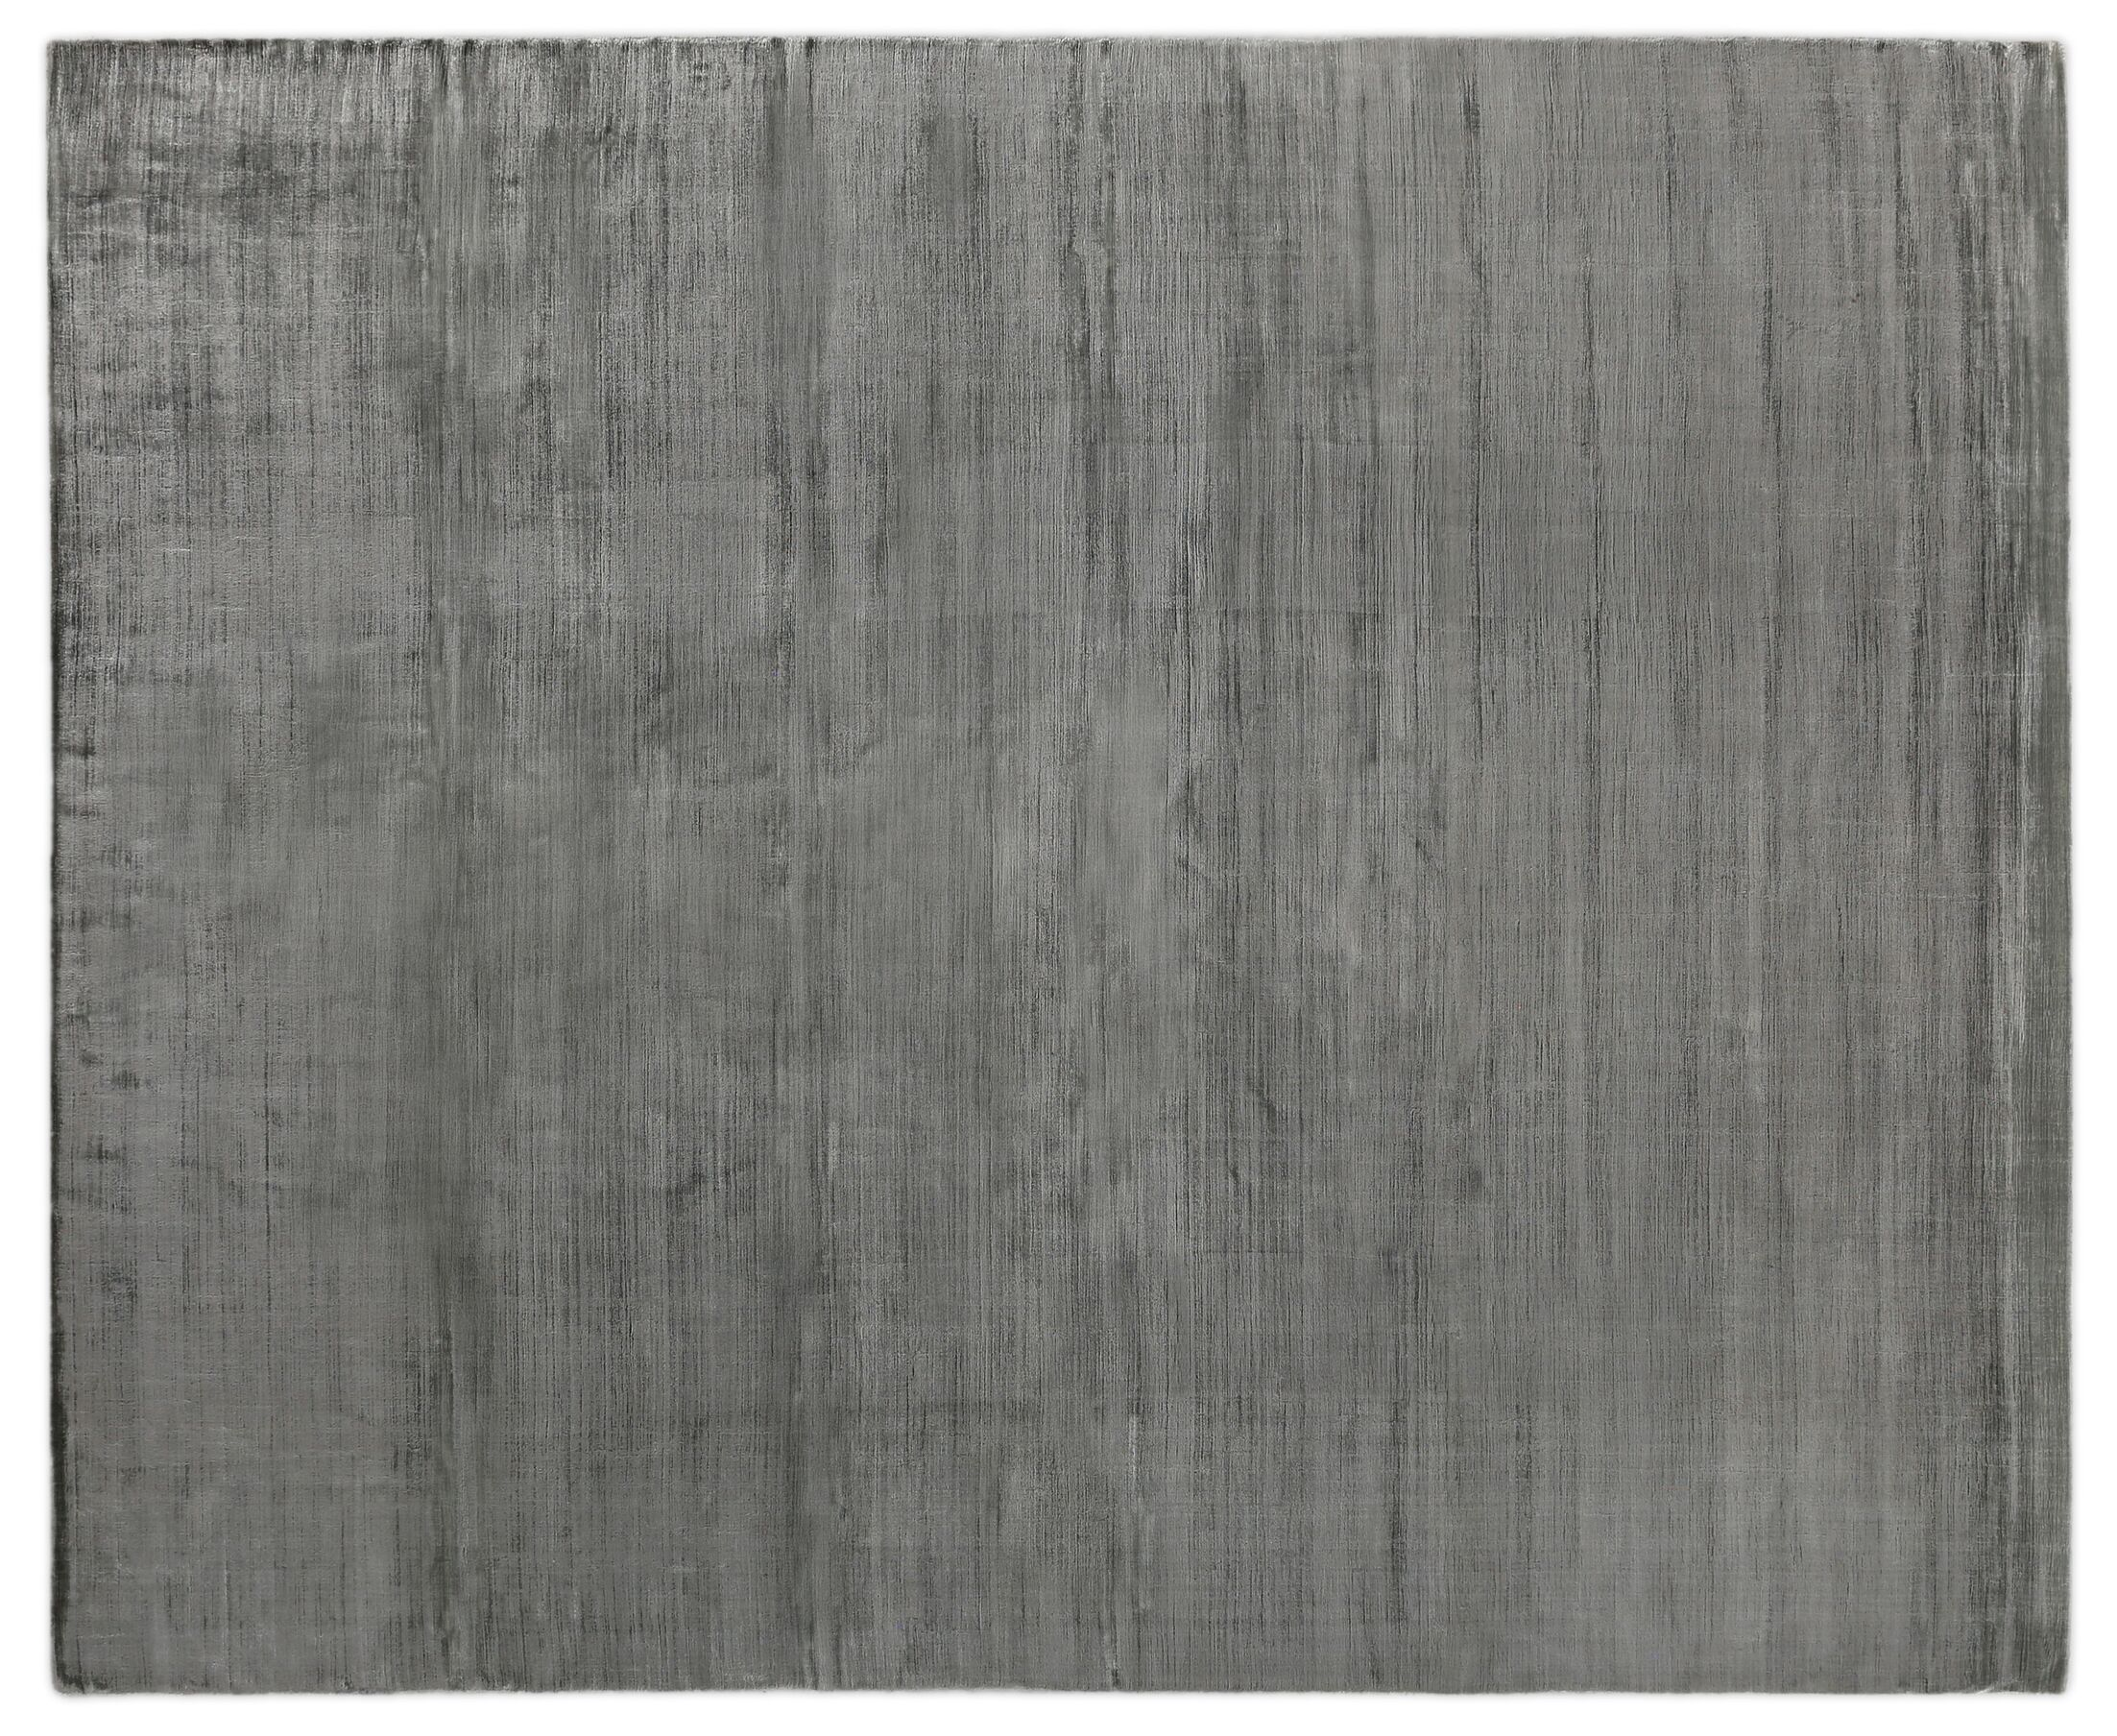 Smooch Carved Hand-Woven Gray Area Rug Rug Size: Rectangle 10' x 14'